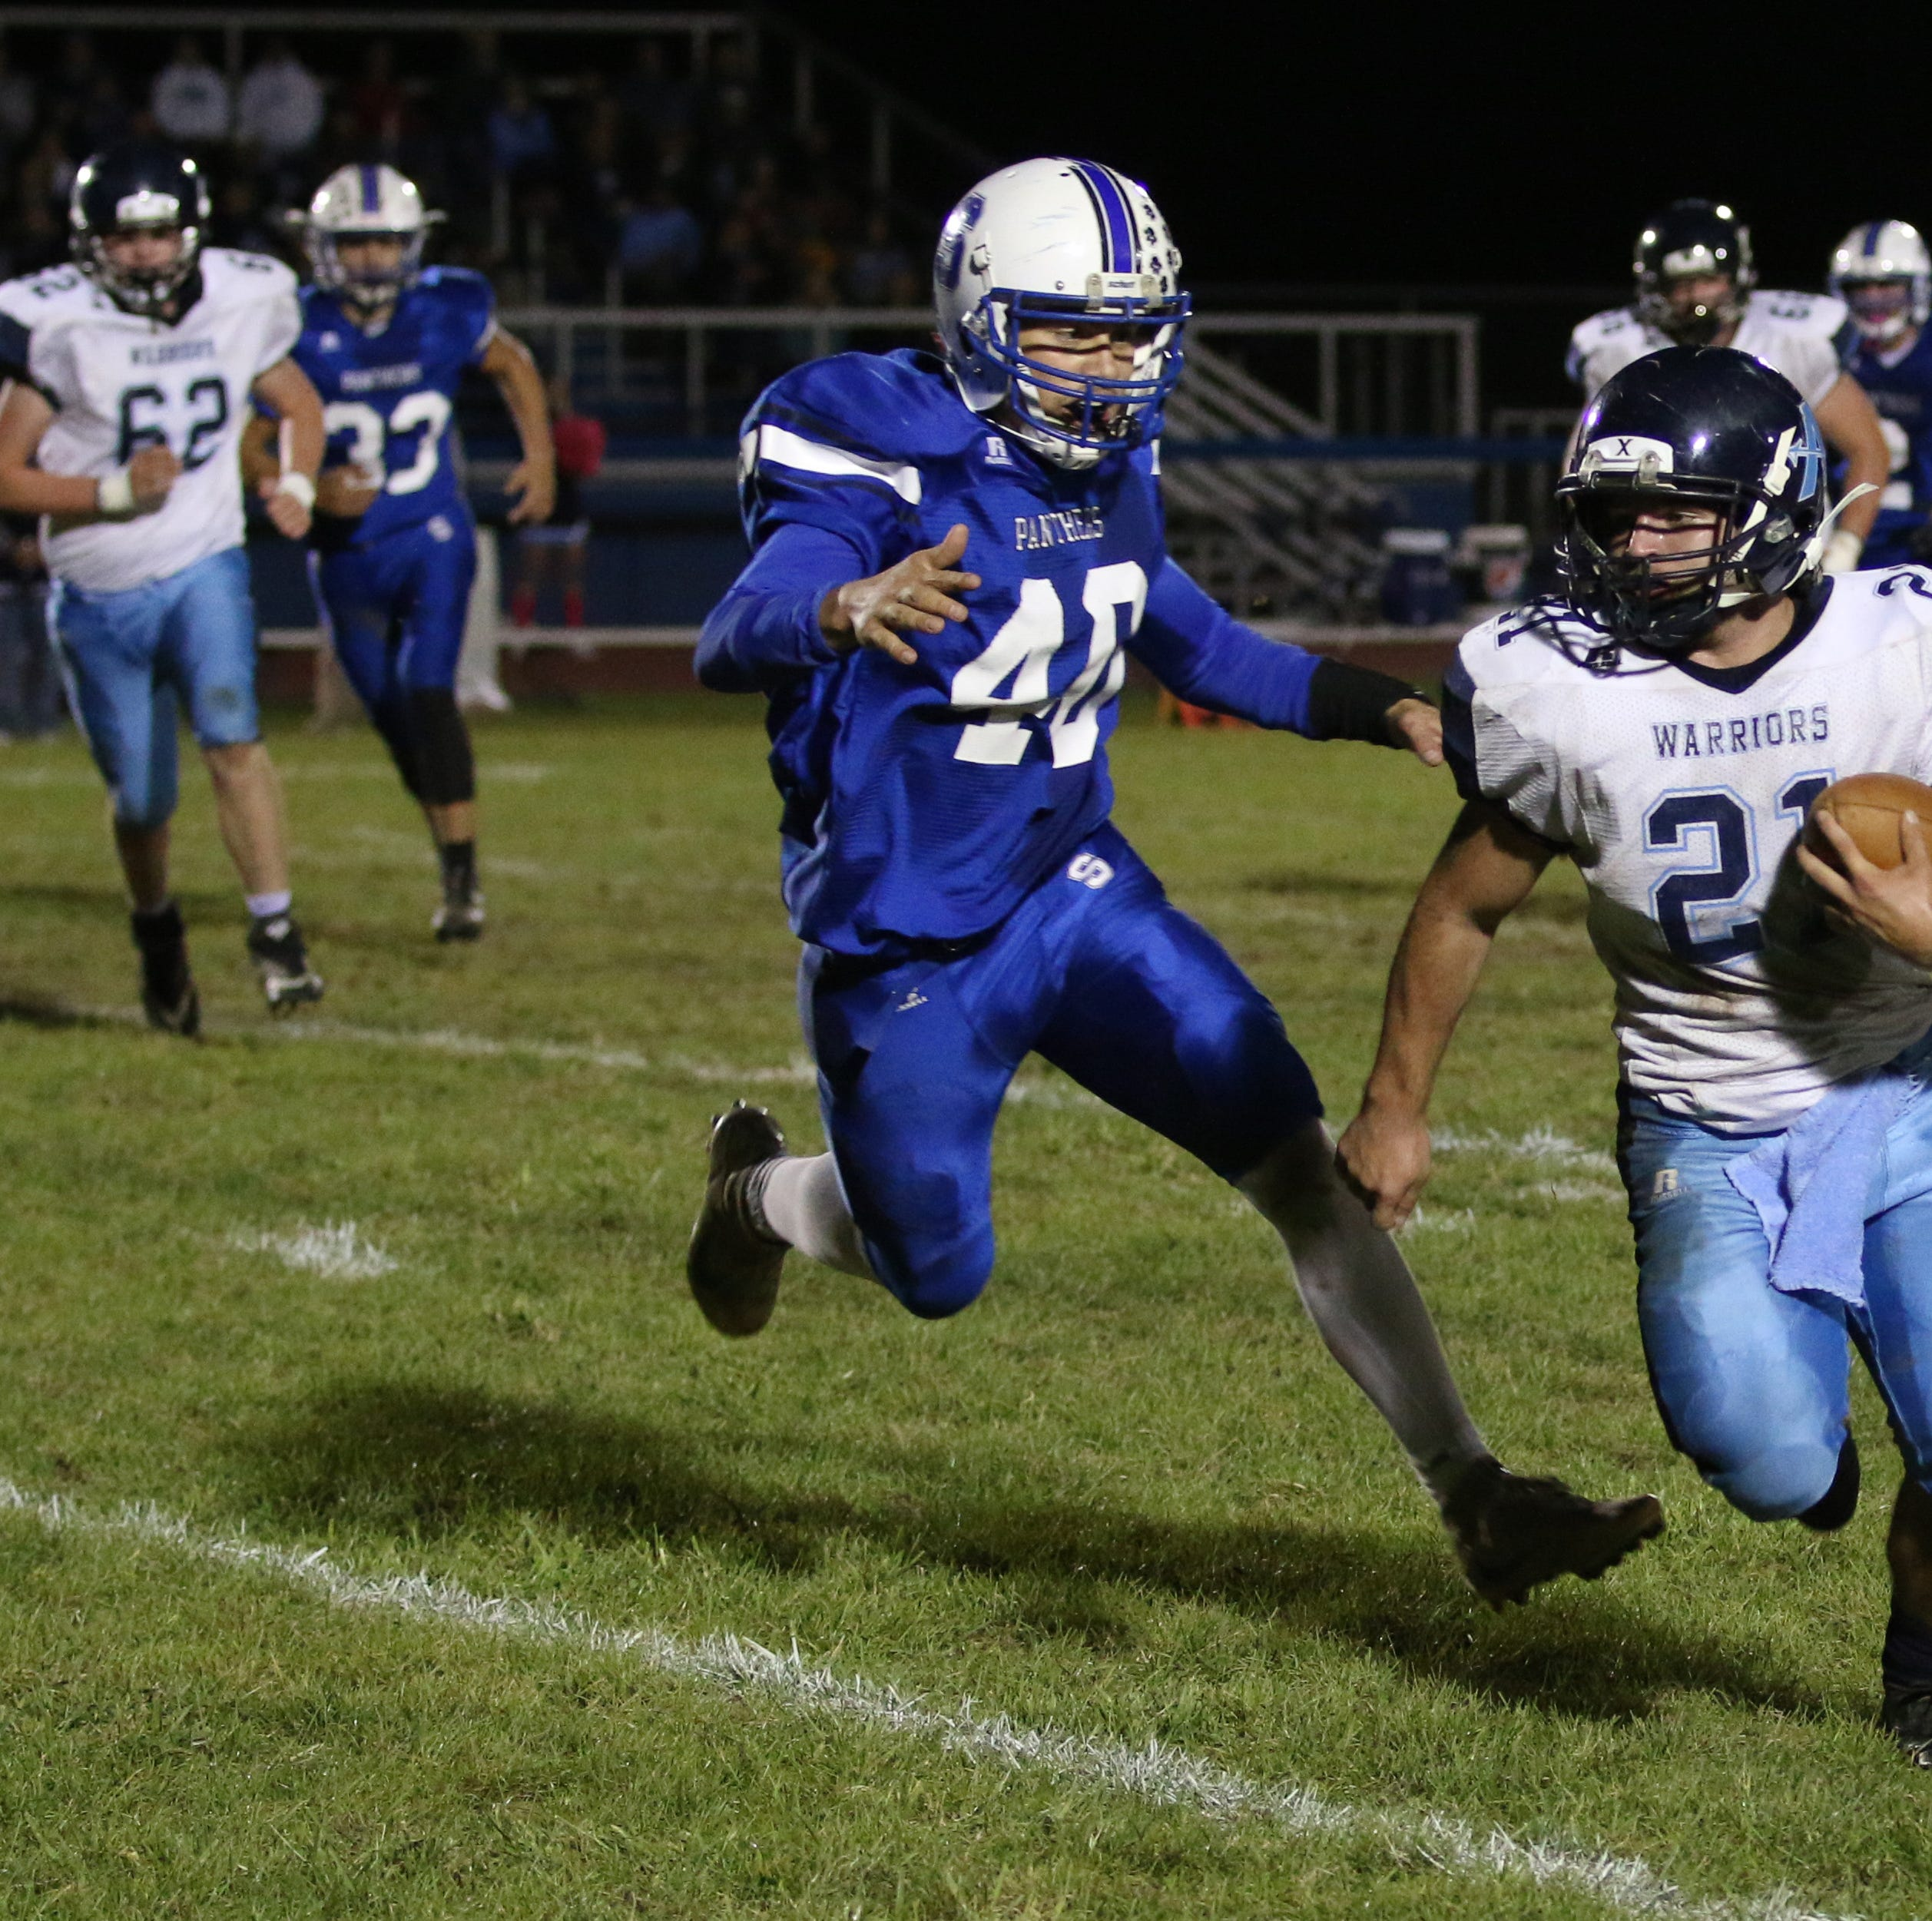 OHIO HS FOOTBALL: Four takeaways from Adenas 33-30 win over the Southeastern Panthers